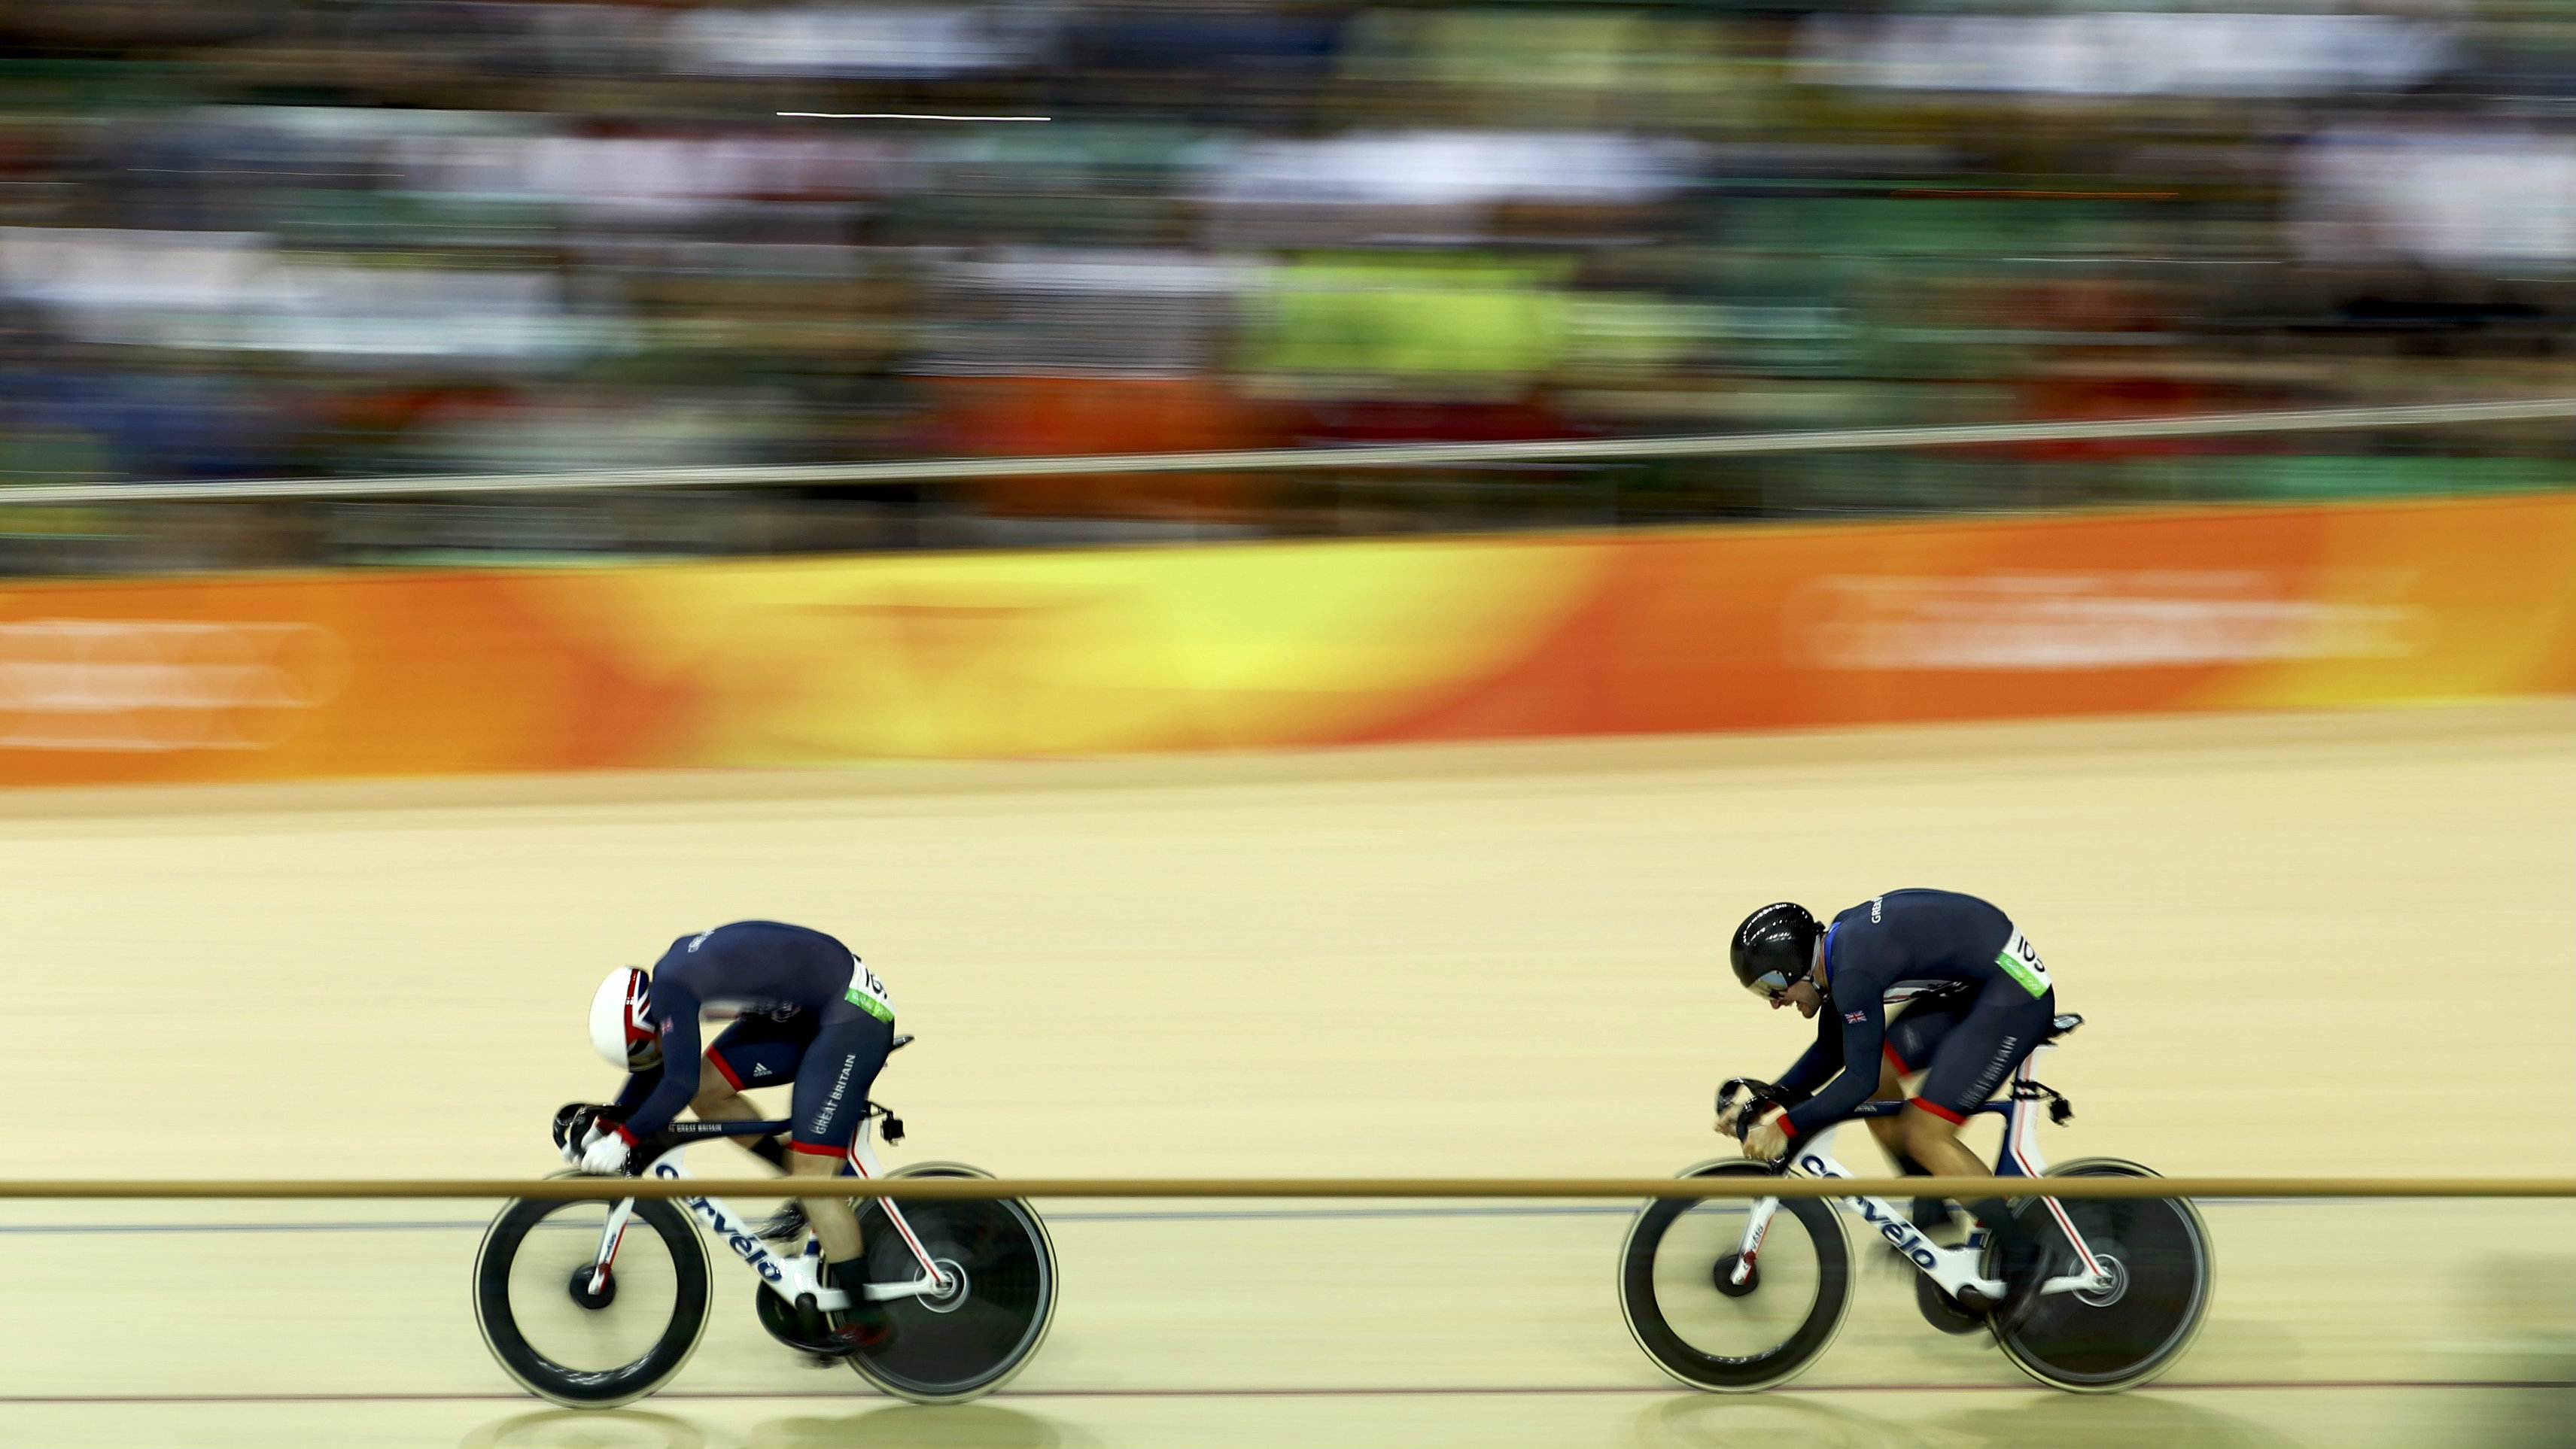 Callum Skinner and Jason Kenny compete in the Men's Sprint Final Gold Race at the 2016 Rio Olympic Games.